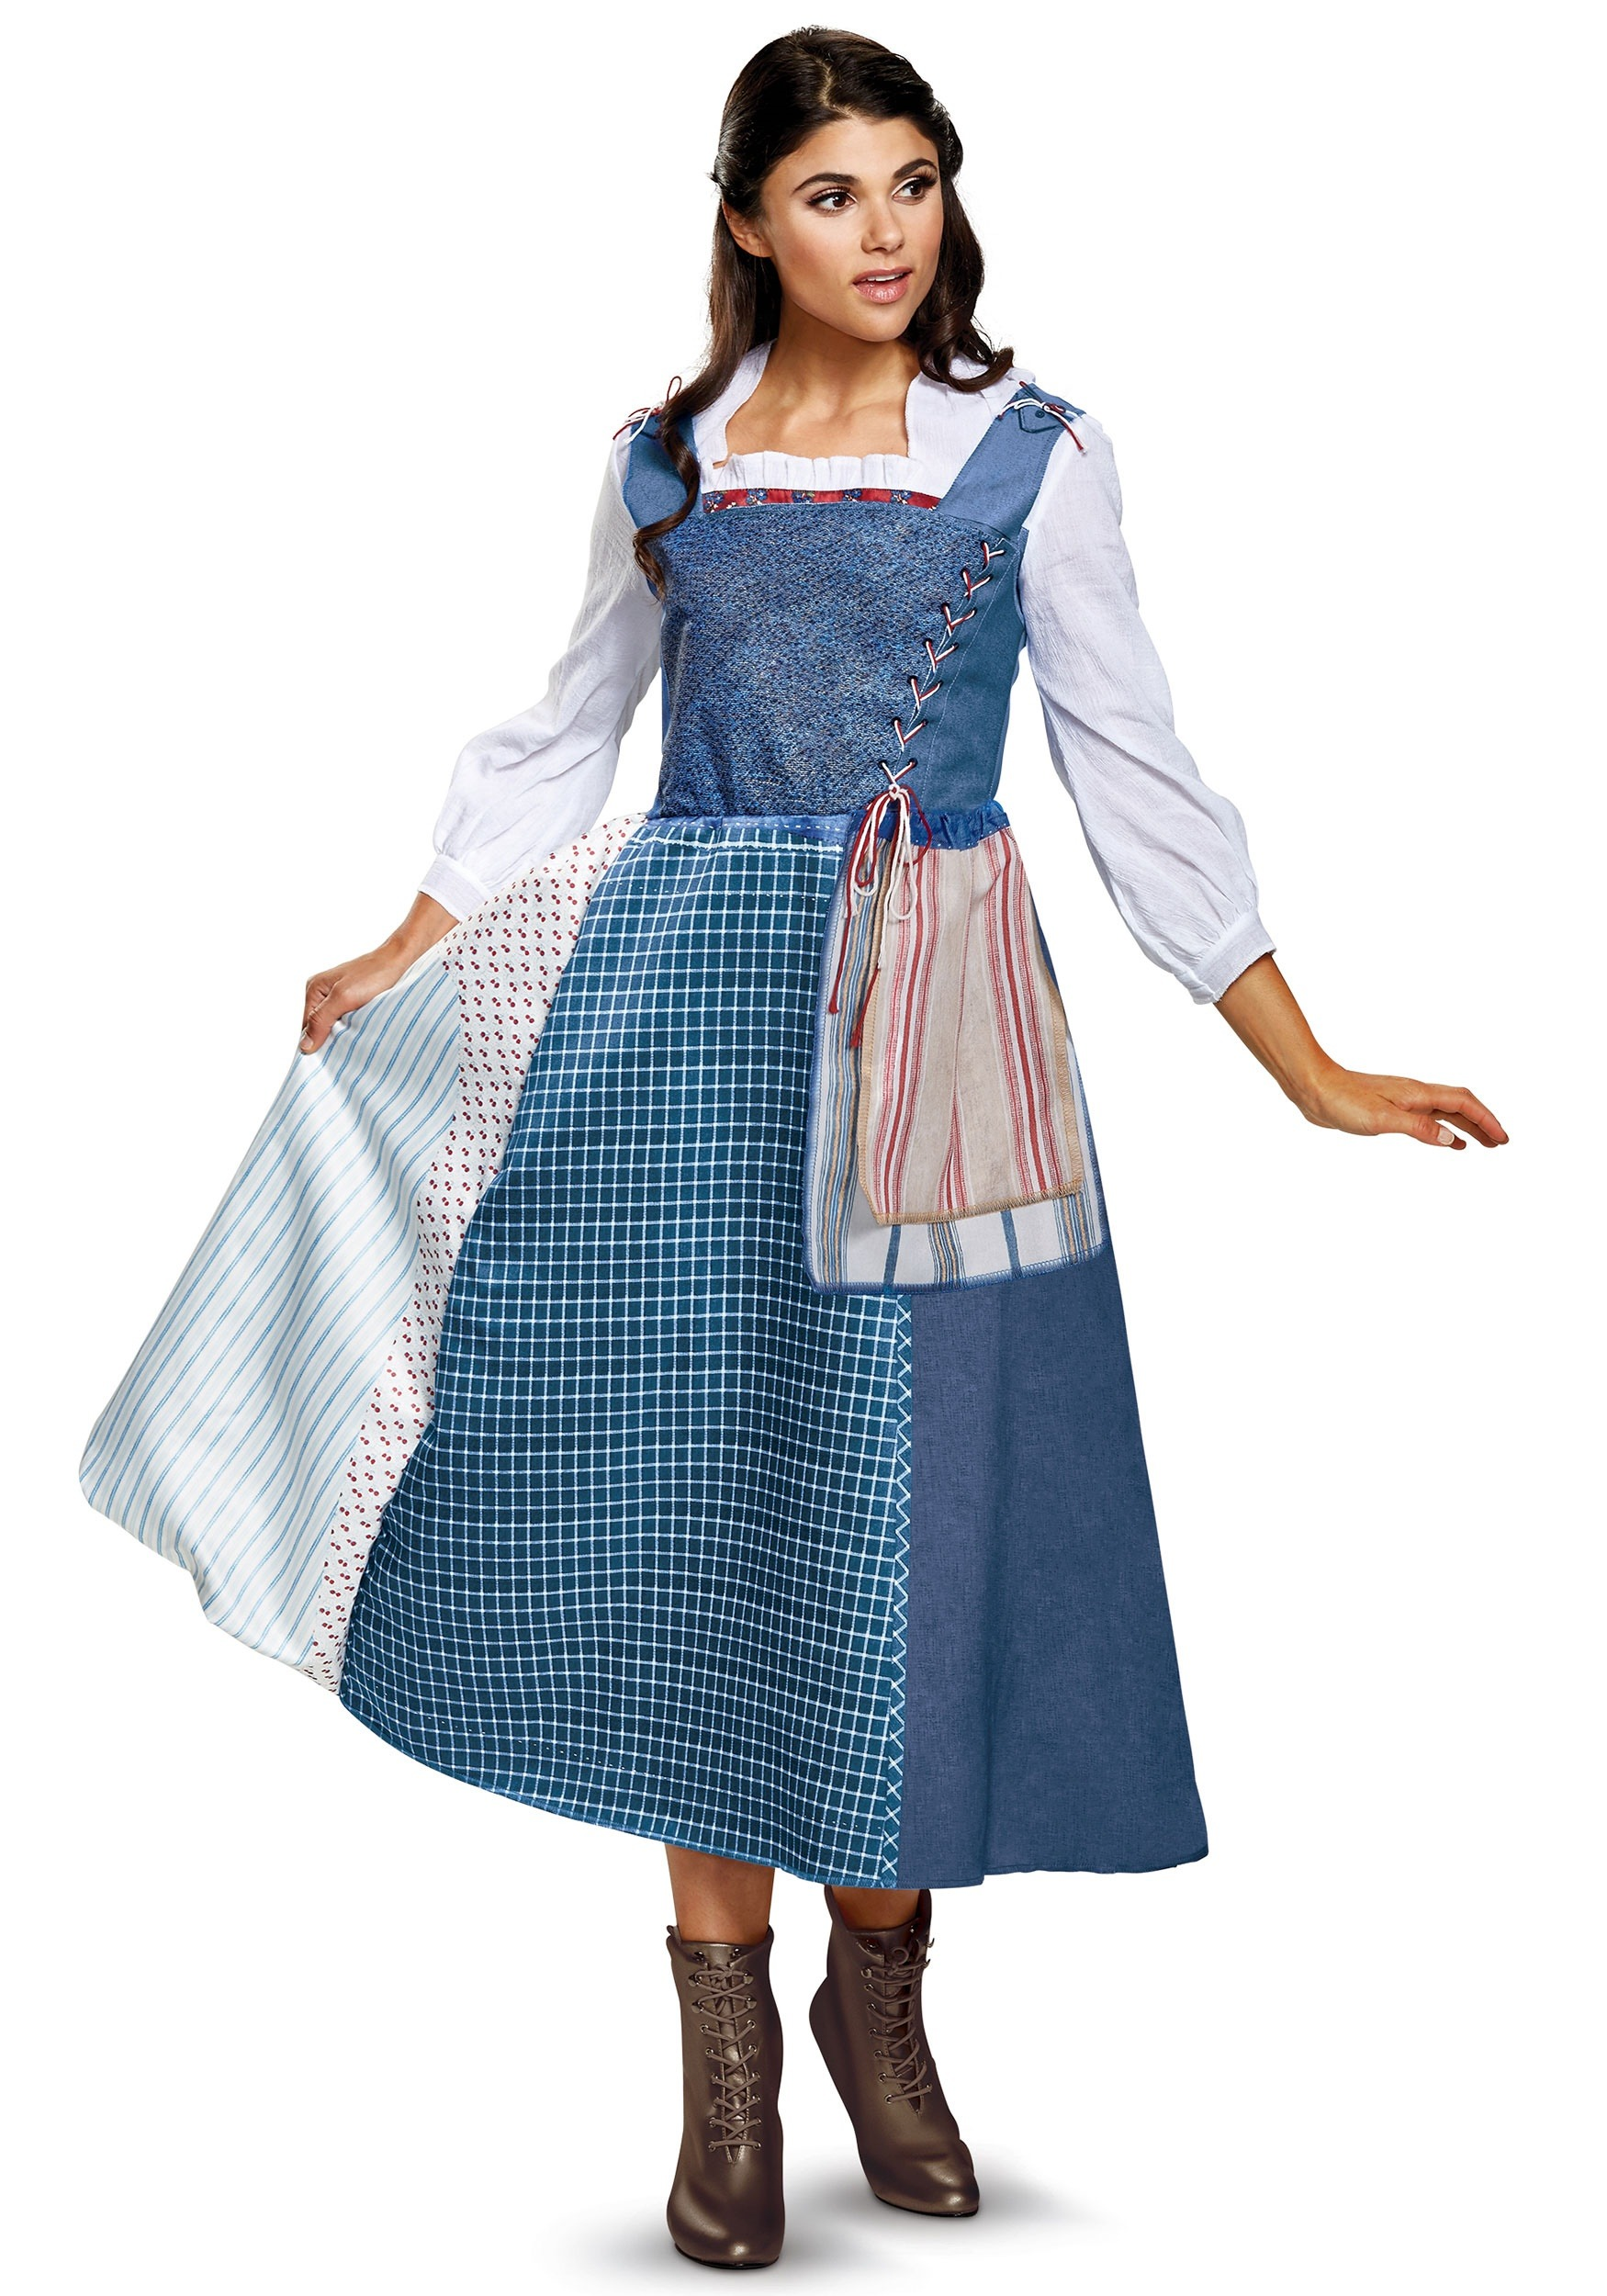 Belle Village Dress Deluxe Costume for Women